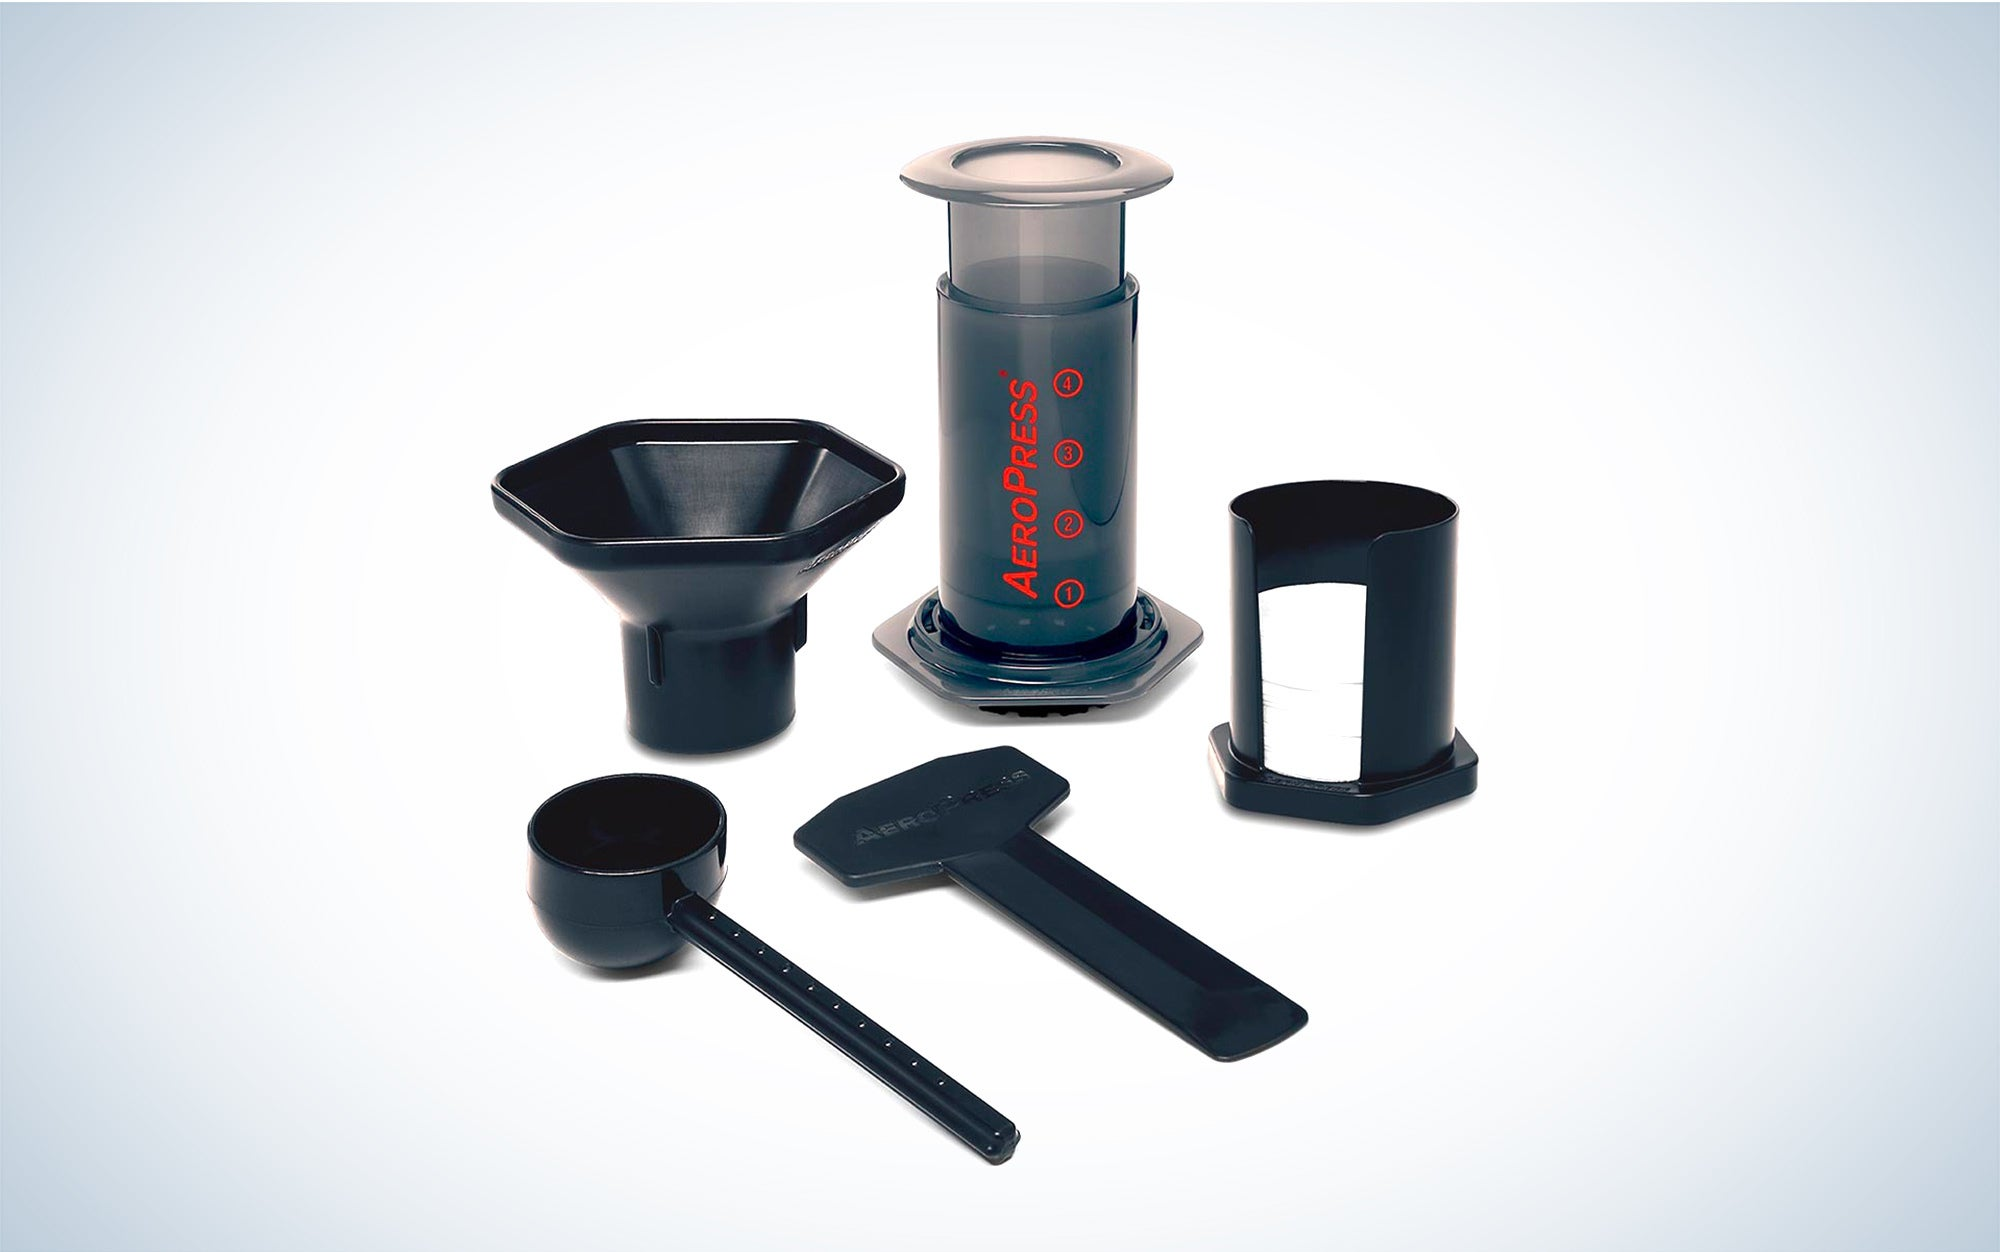 an AeroPress coffee press with funnel, scoop, stirrer, microfilters, and filter holder accessories